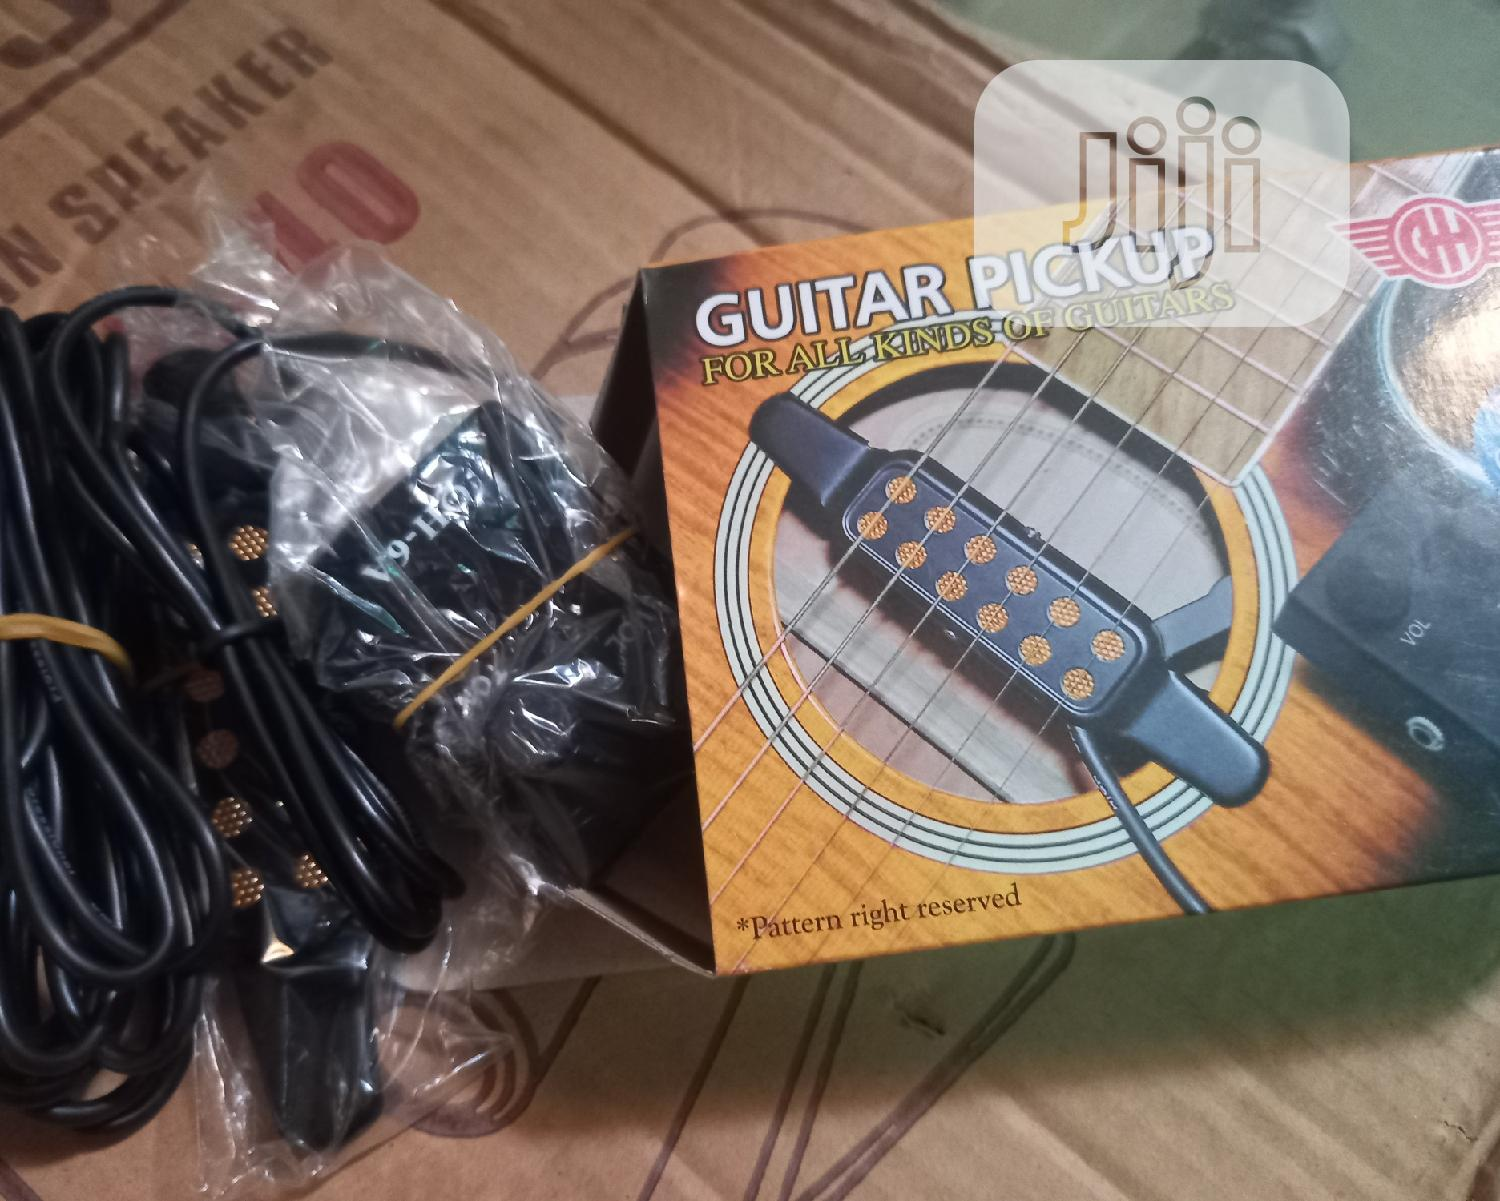 Guitar Pickup for All Kinds of Guitars.